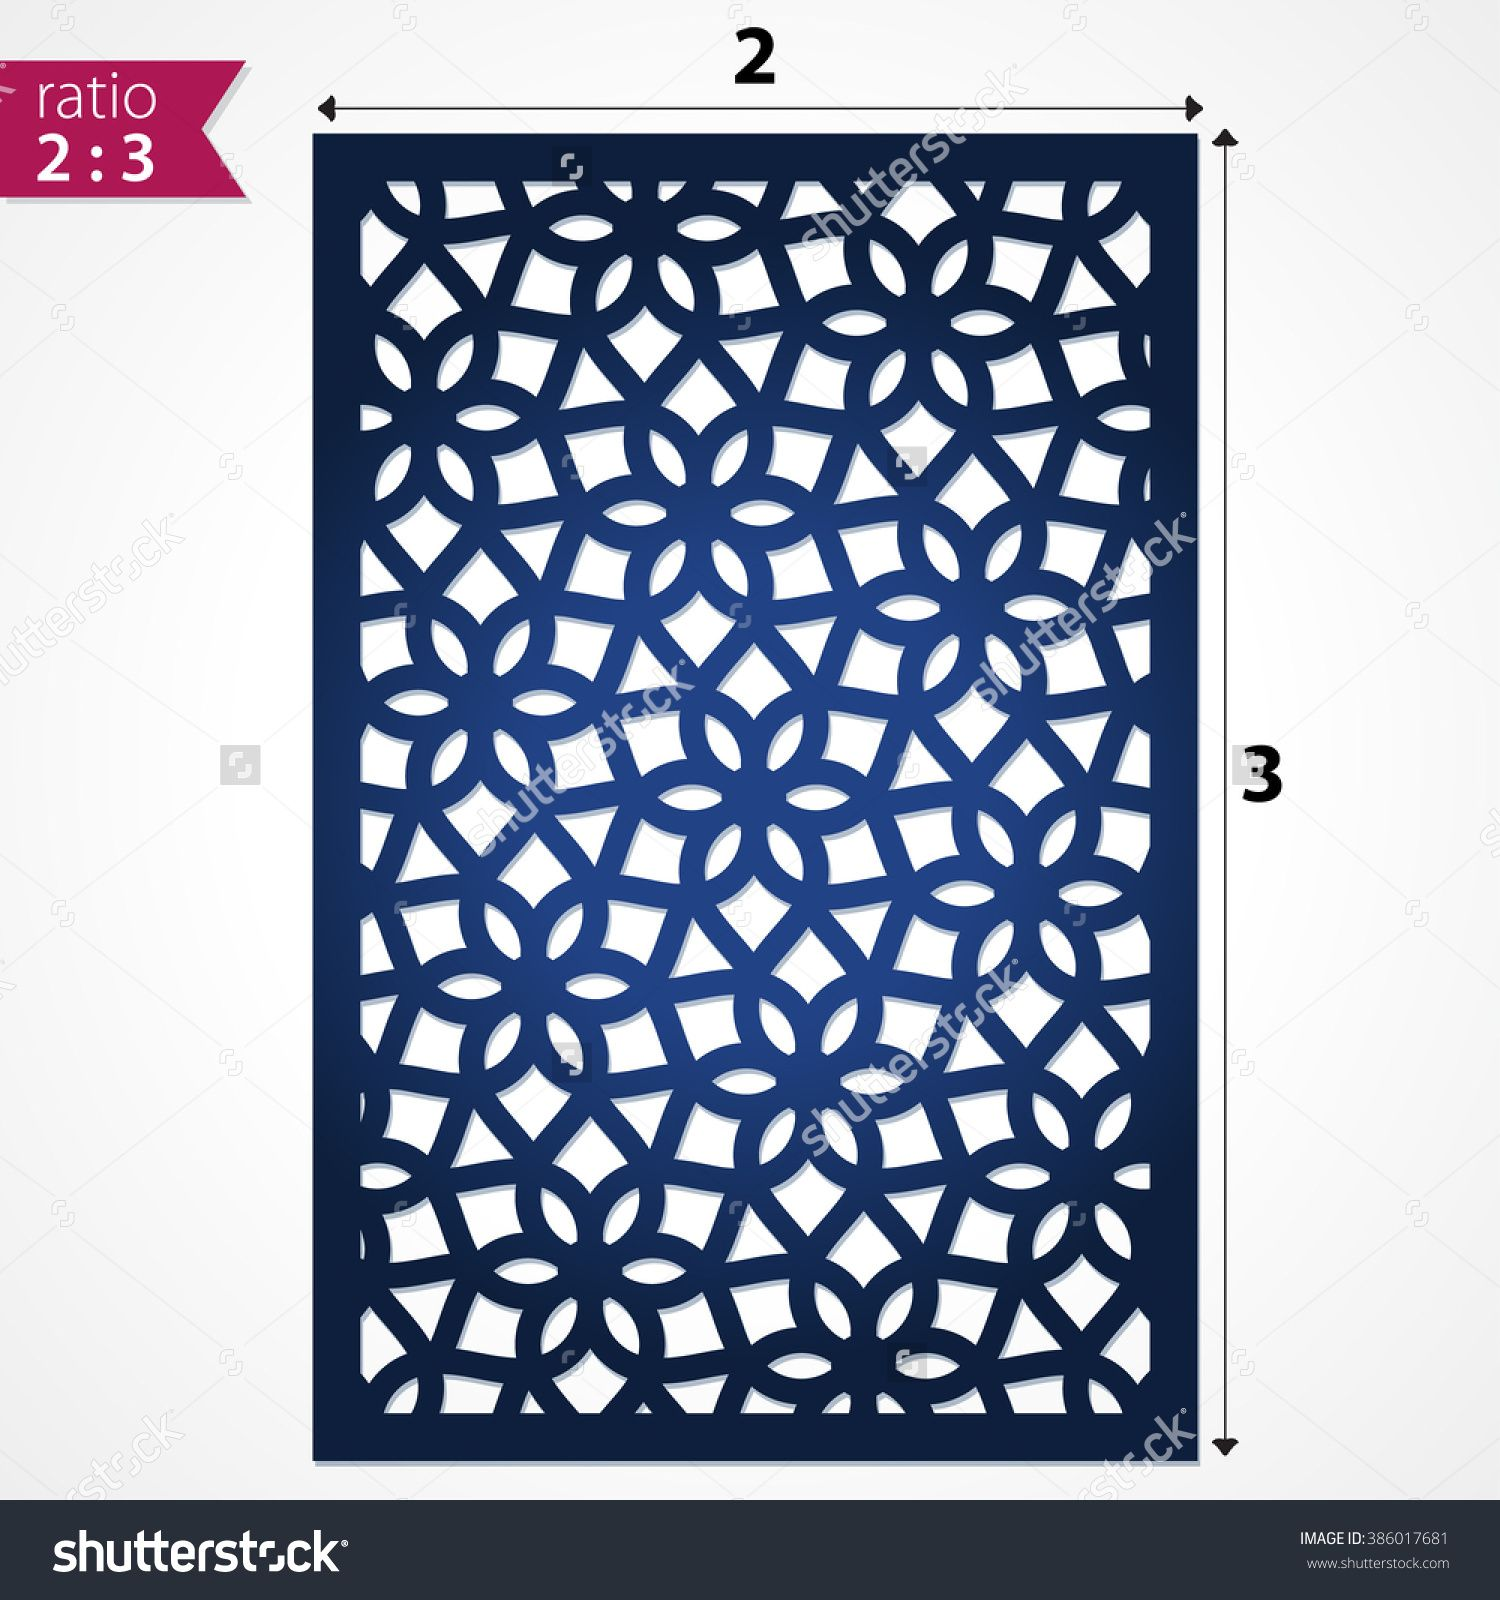 Abstract Cutout Panel For Laser Cutting, Die Cutting Or Stencil ... for Laser Cut Designs Paper  111bof